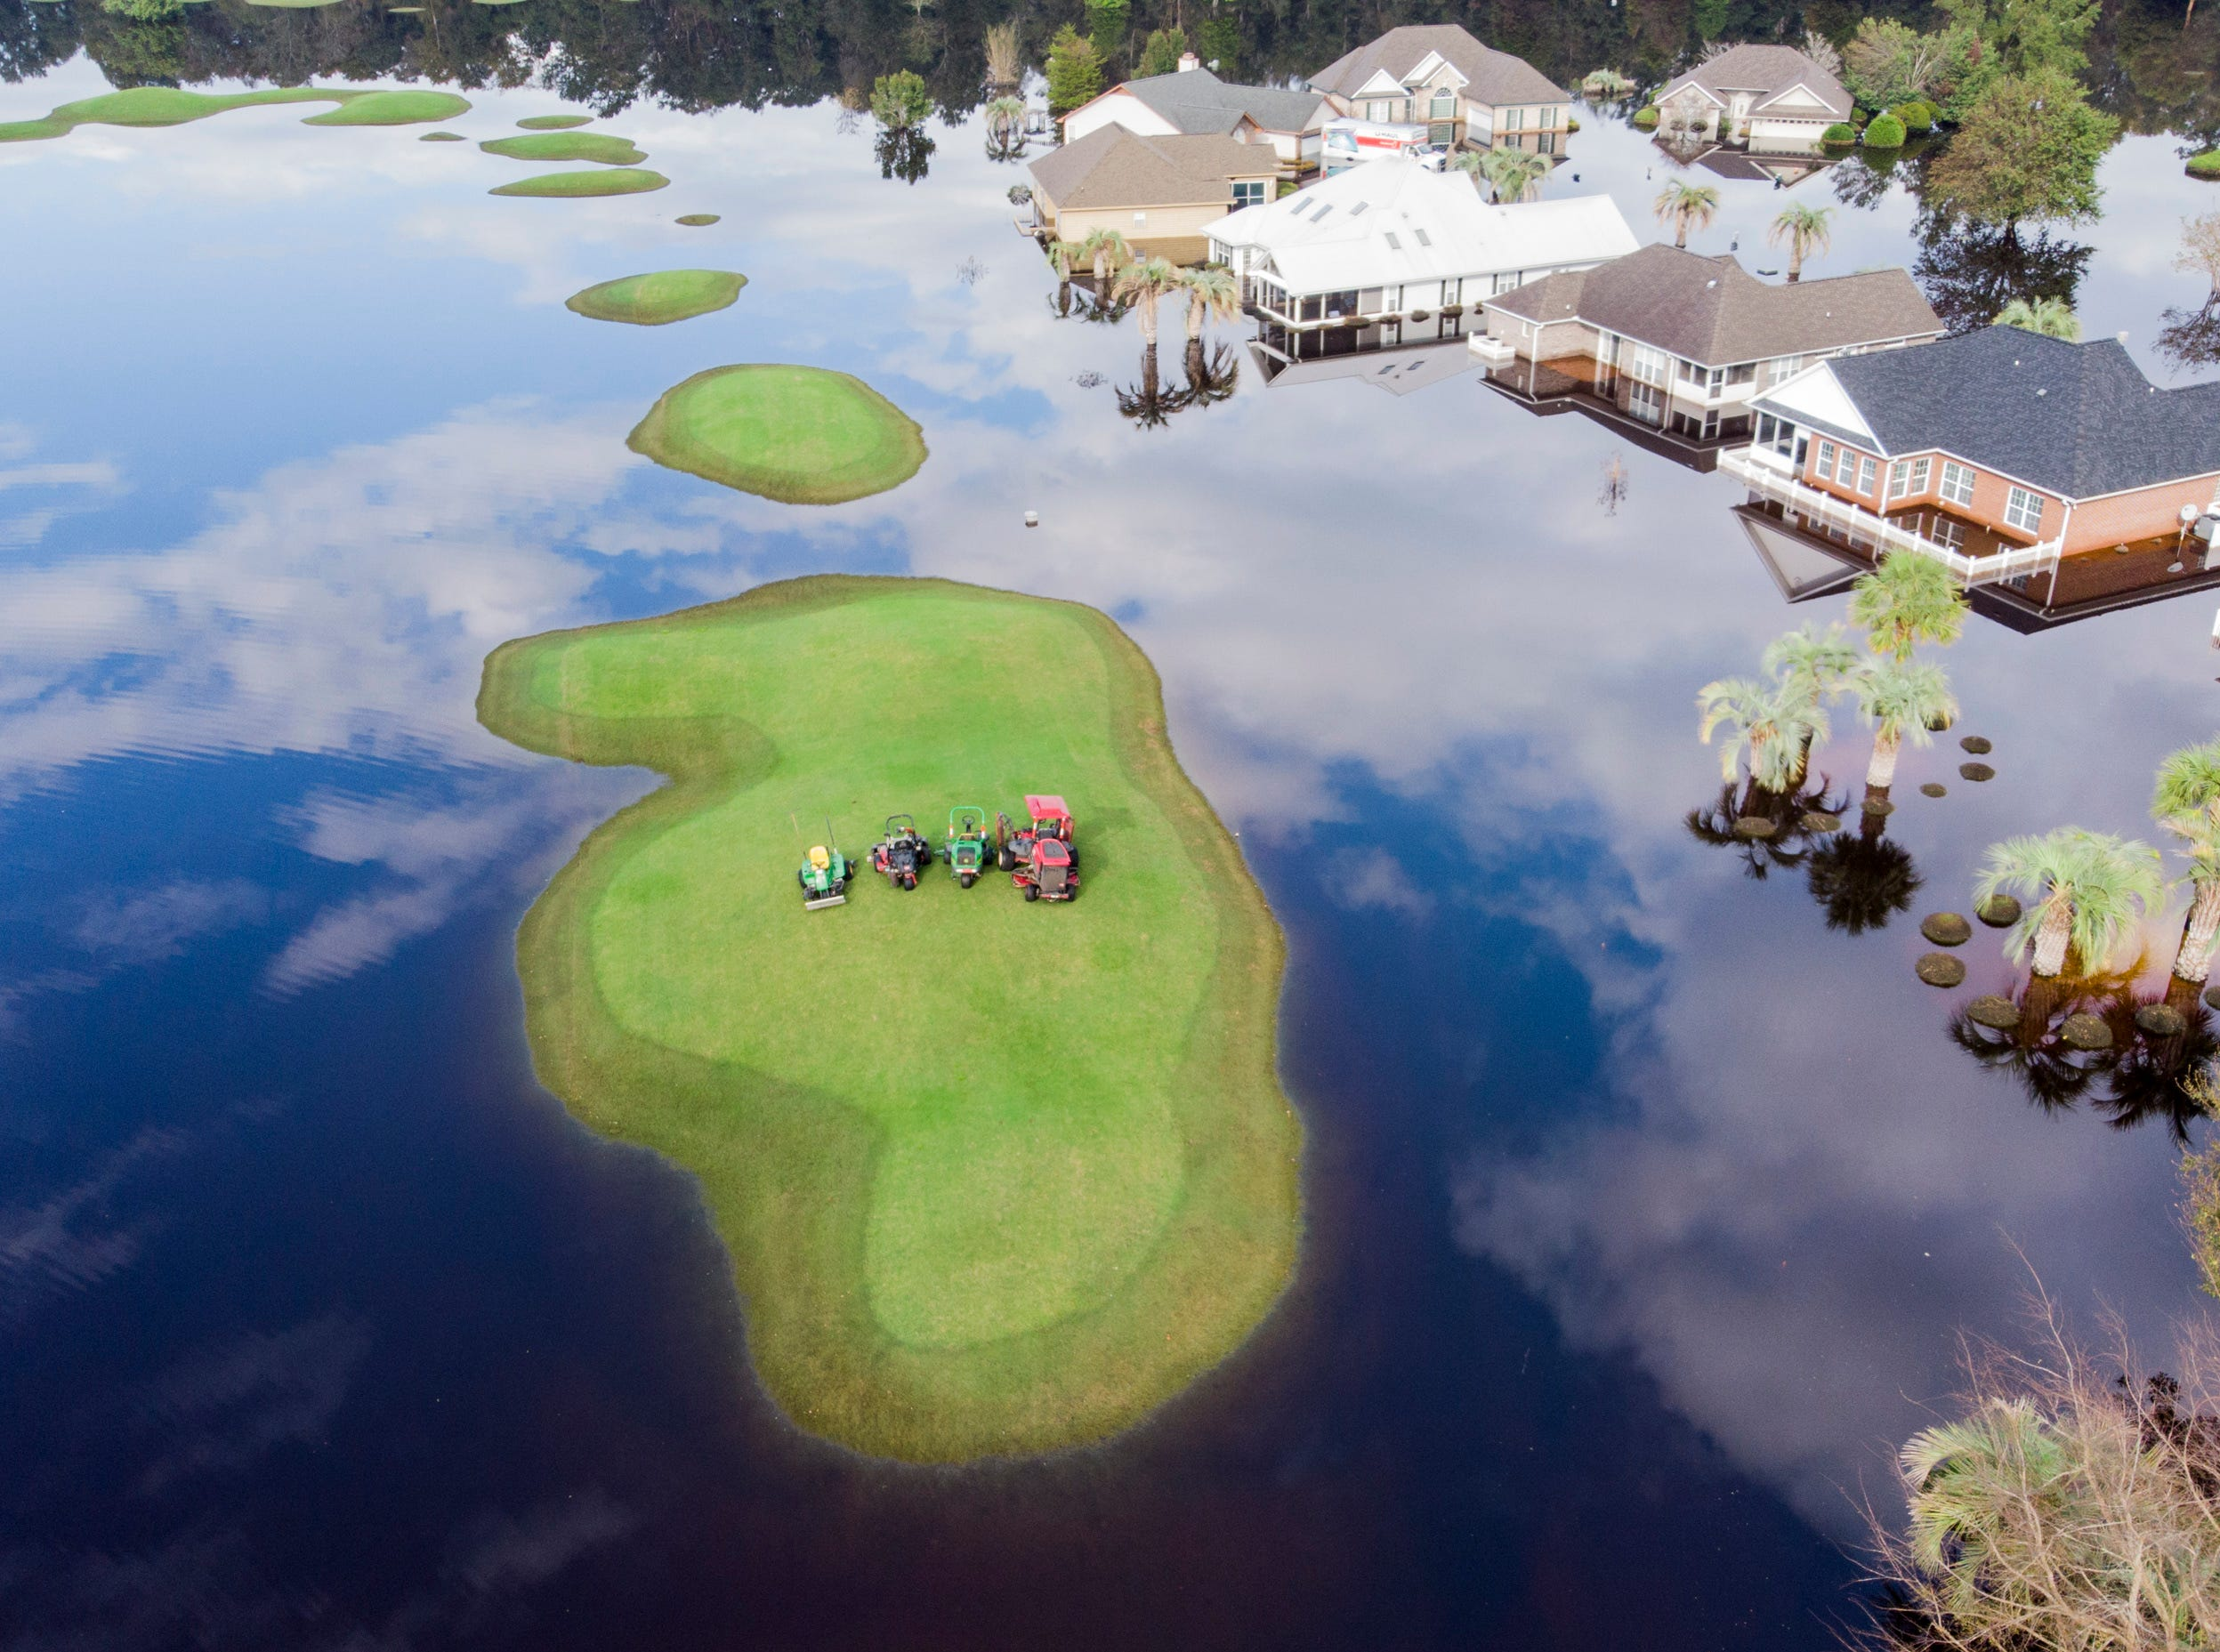 Equipment sits on a high spot on the fairway at Aberdeen Golf Course in Longs, S.C., Monday, Sept. 24, 2018. Floodwaters from the Waccamaw River are beginning to recede in the northern part of Horry County, while Conway is expected to crest on Wednesday.